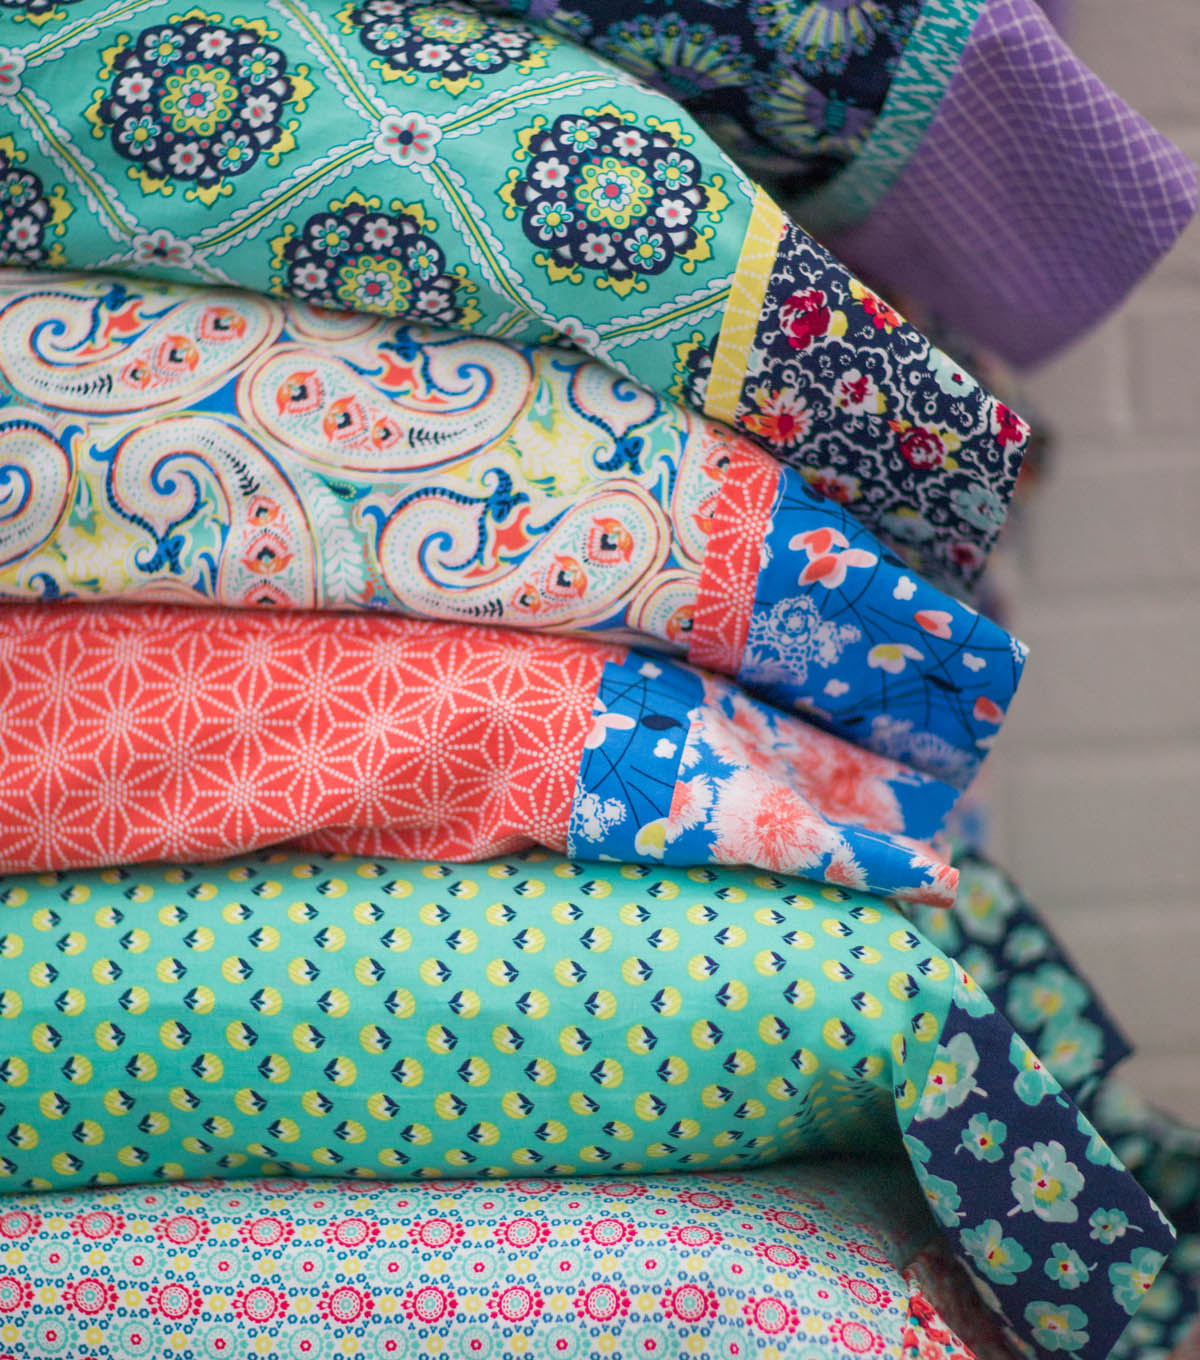 How to make a pillowcase with cuff joann how to make a pillowcase with cuff jeuxipadfo Choice Image